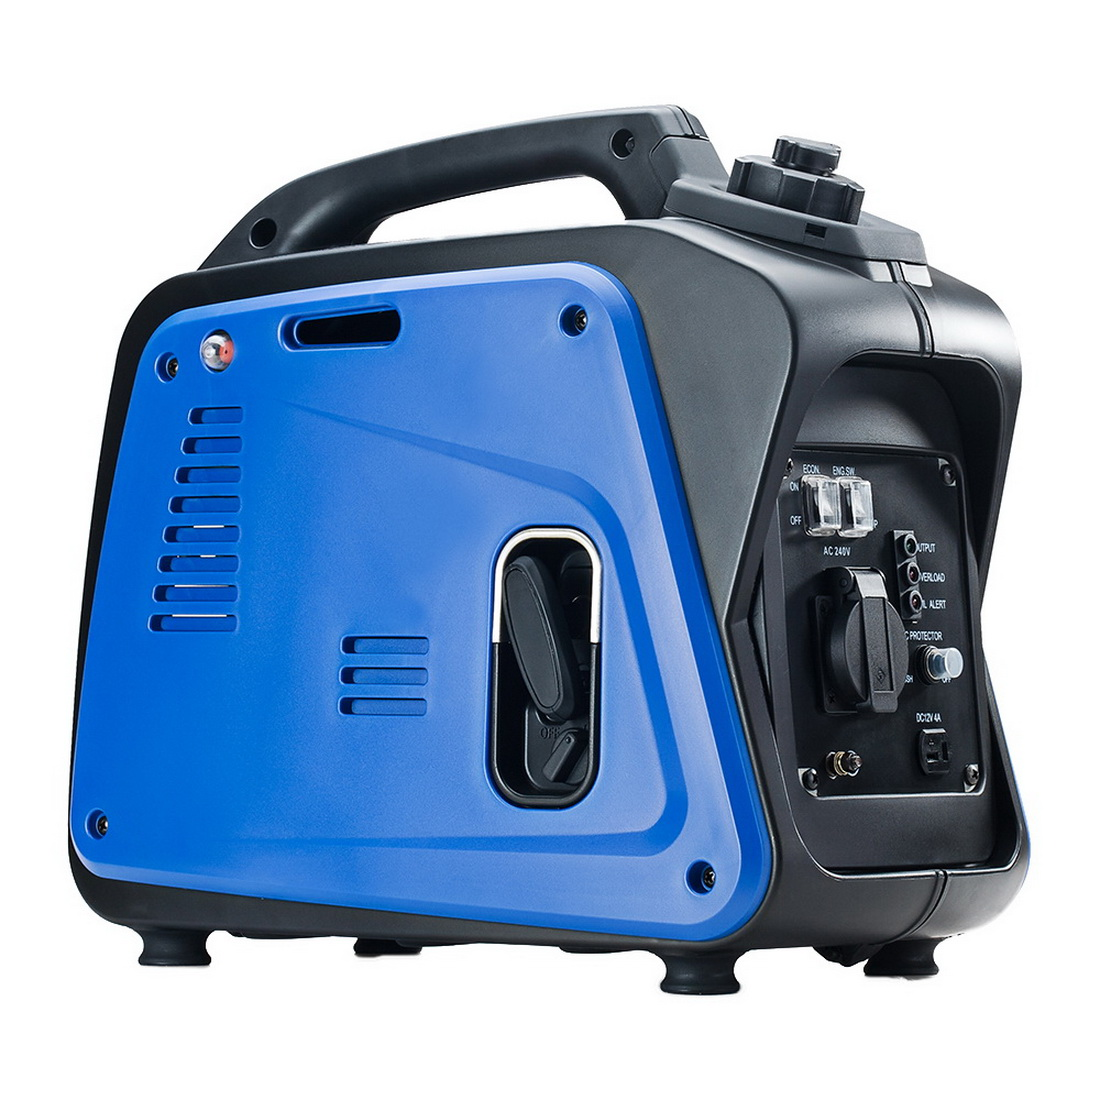 GenTrax 1.2kW Pure Sine Wave Petrol Inverter Camping Generator